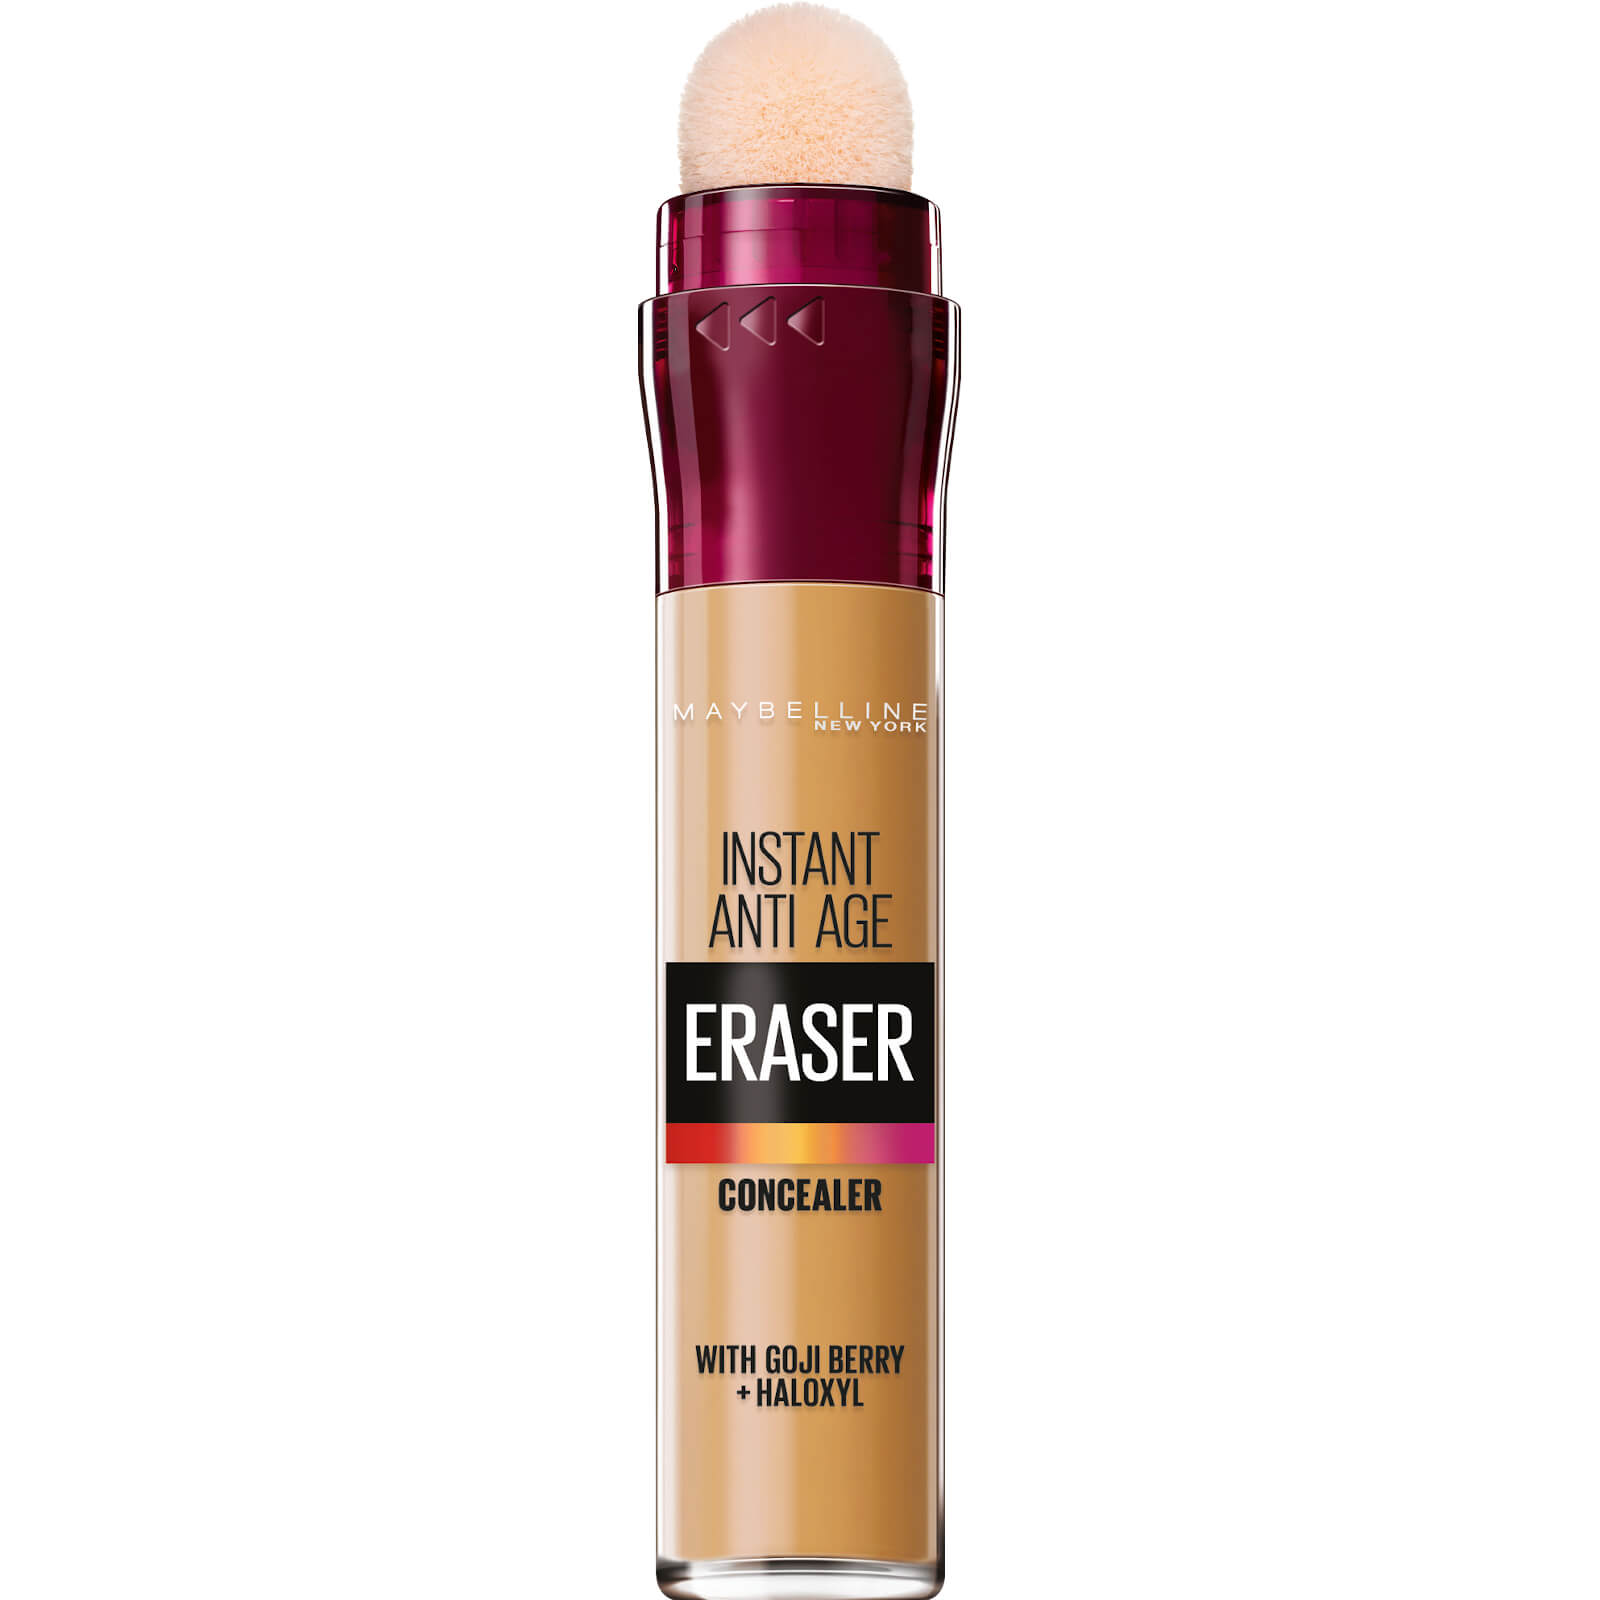 Maybelline Instant Anti Age Eraser Concealer 6.8ml (Various Shades) - 08 Buff